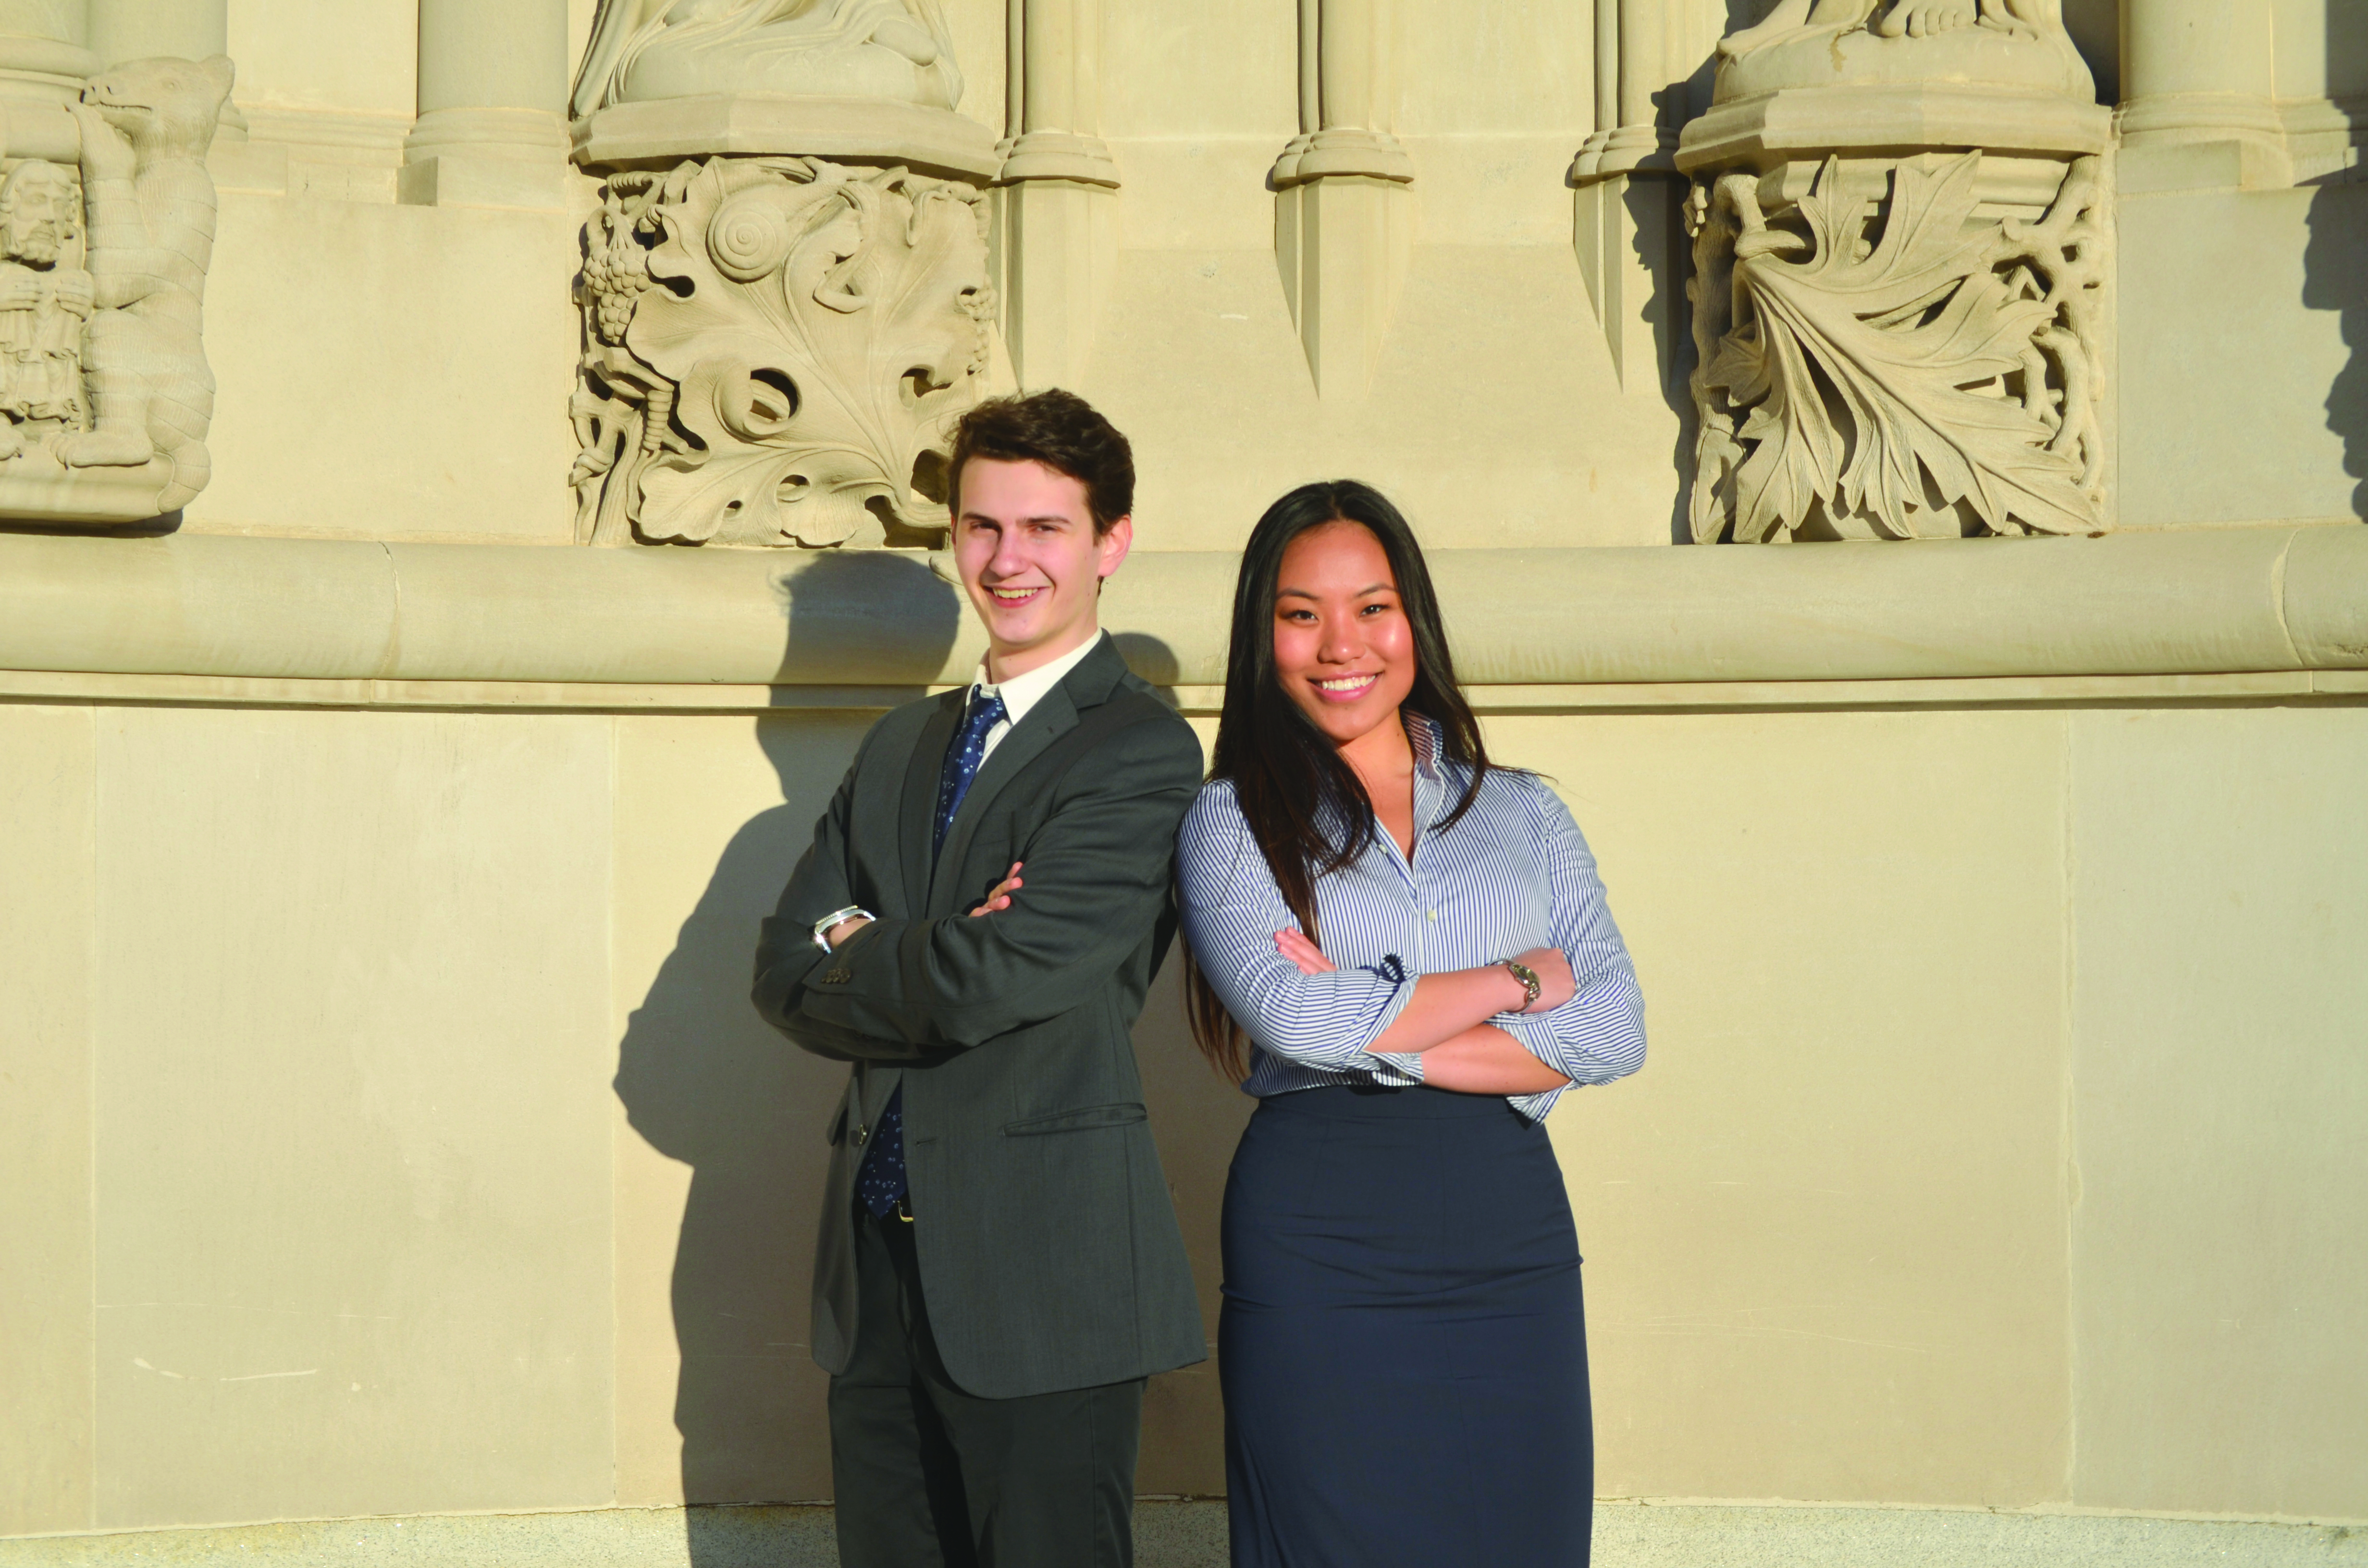 Evan Feder and  Wenyi Zhu, Student Body President and Vice President respectively, are not planning to re-run for a role in student government. (credit: Nora Mattson/Chief Technology Officer)